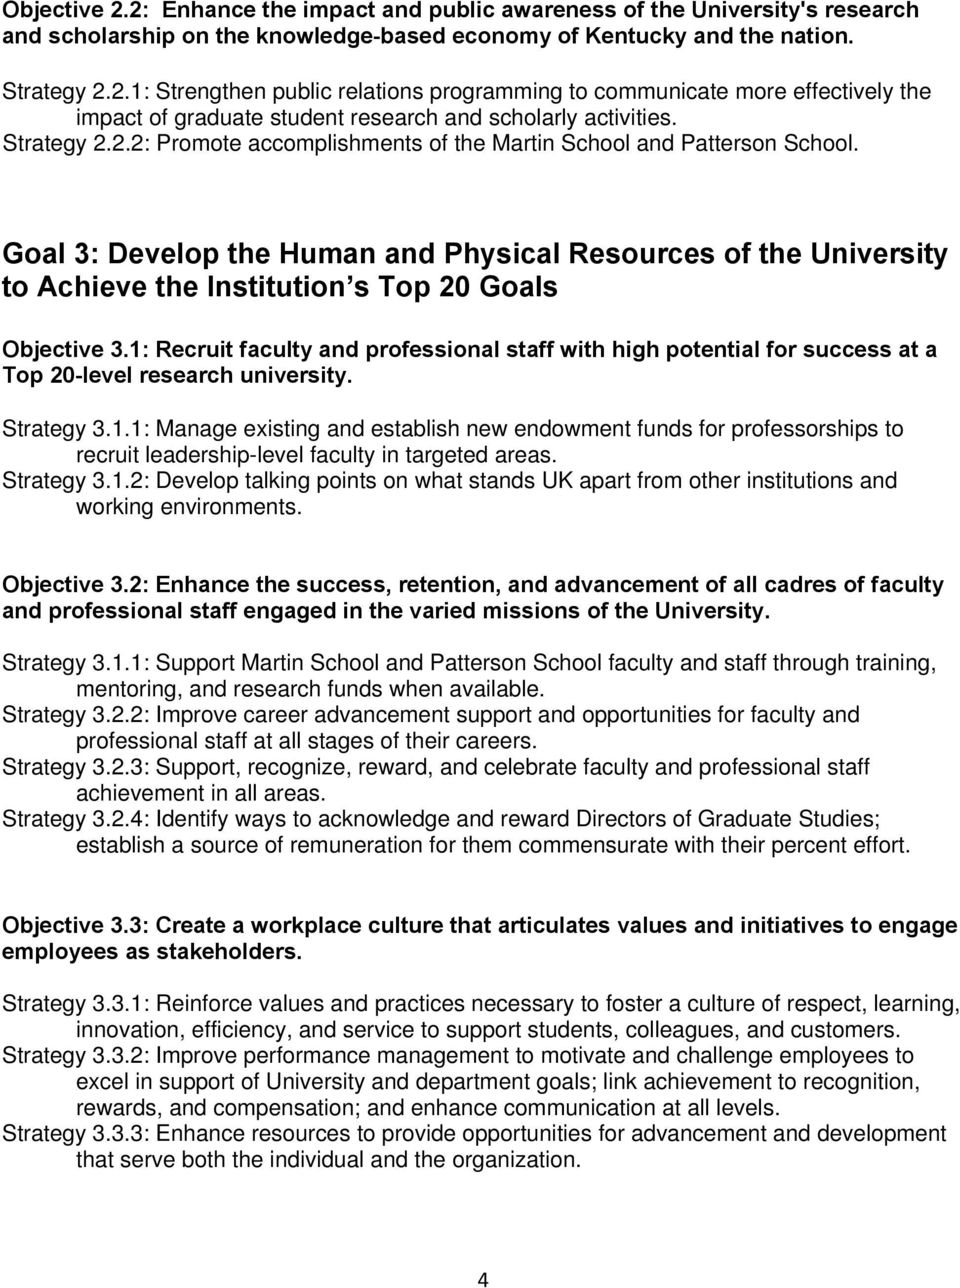 Goal 3: Develop the Human and Physical Resources of the University to Achieve the Institution s Top 20 Goals Objective 3.